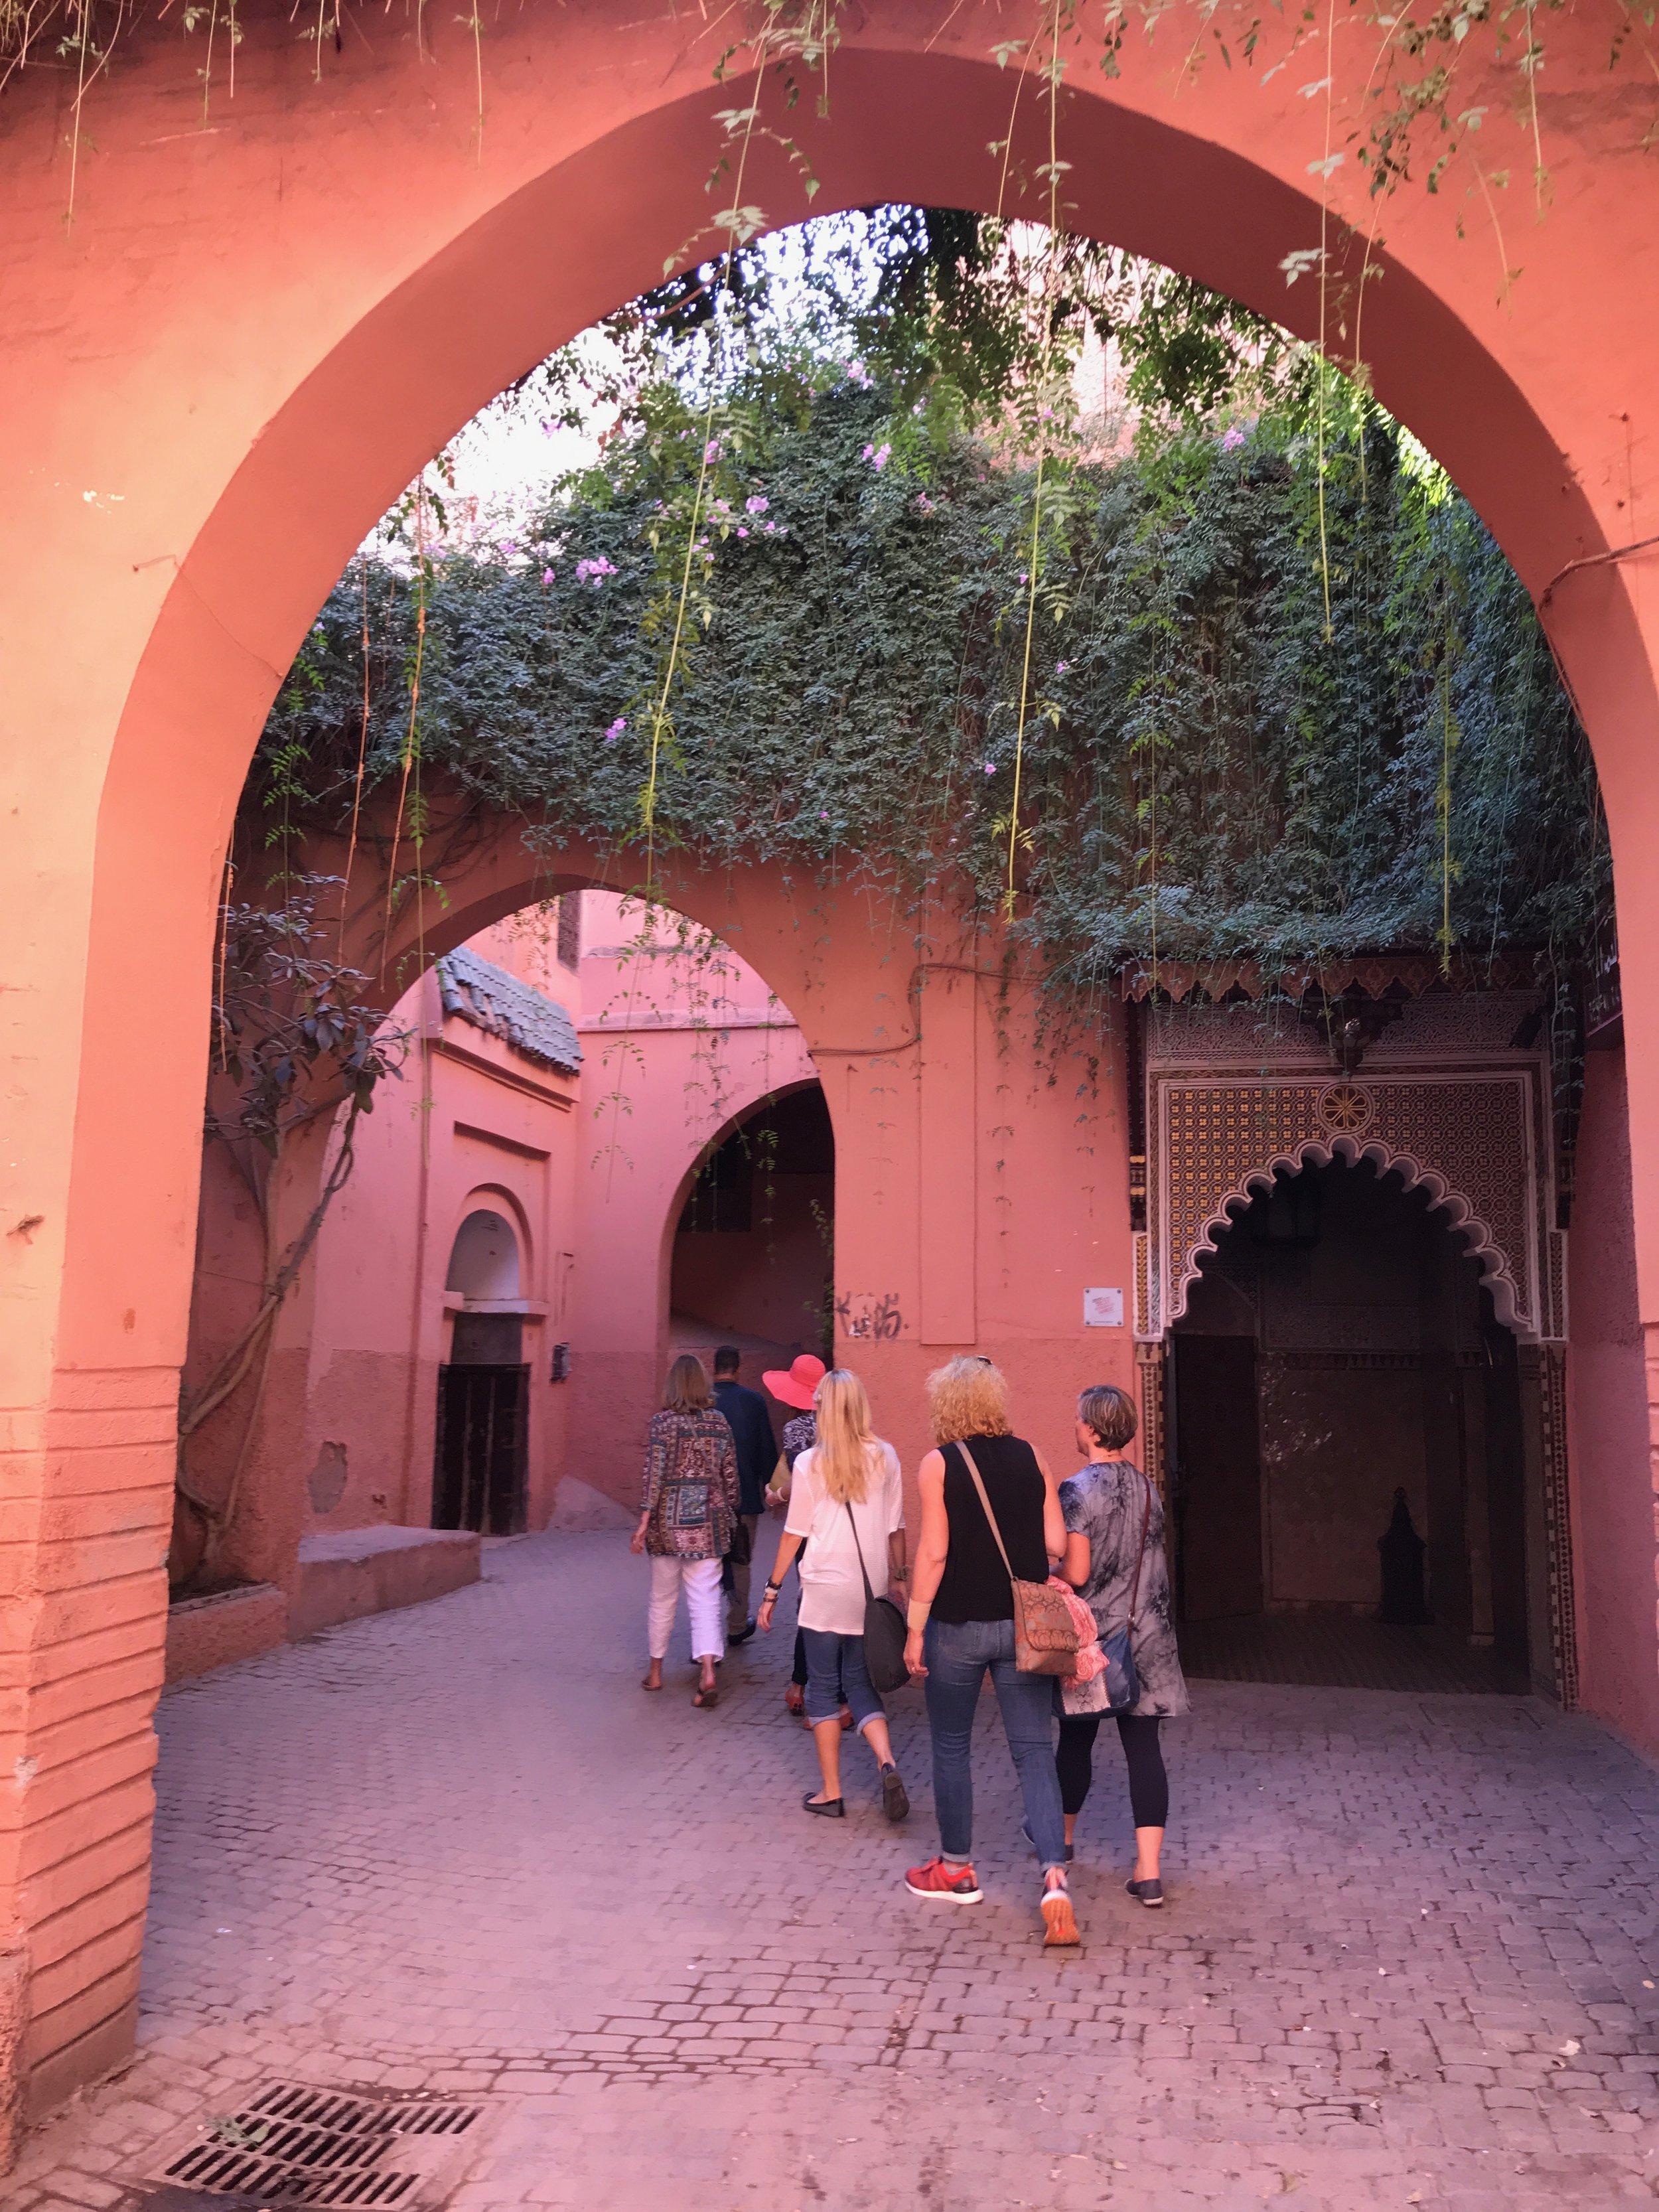 Wandering the twists of the Marrakech medina